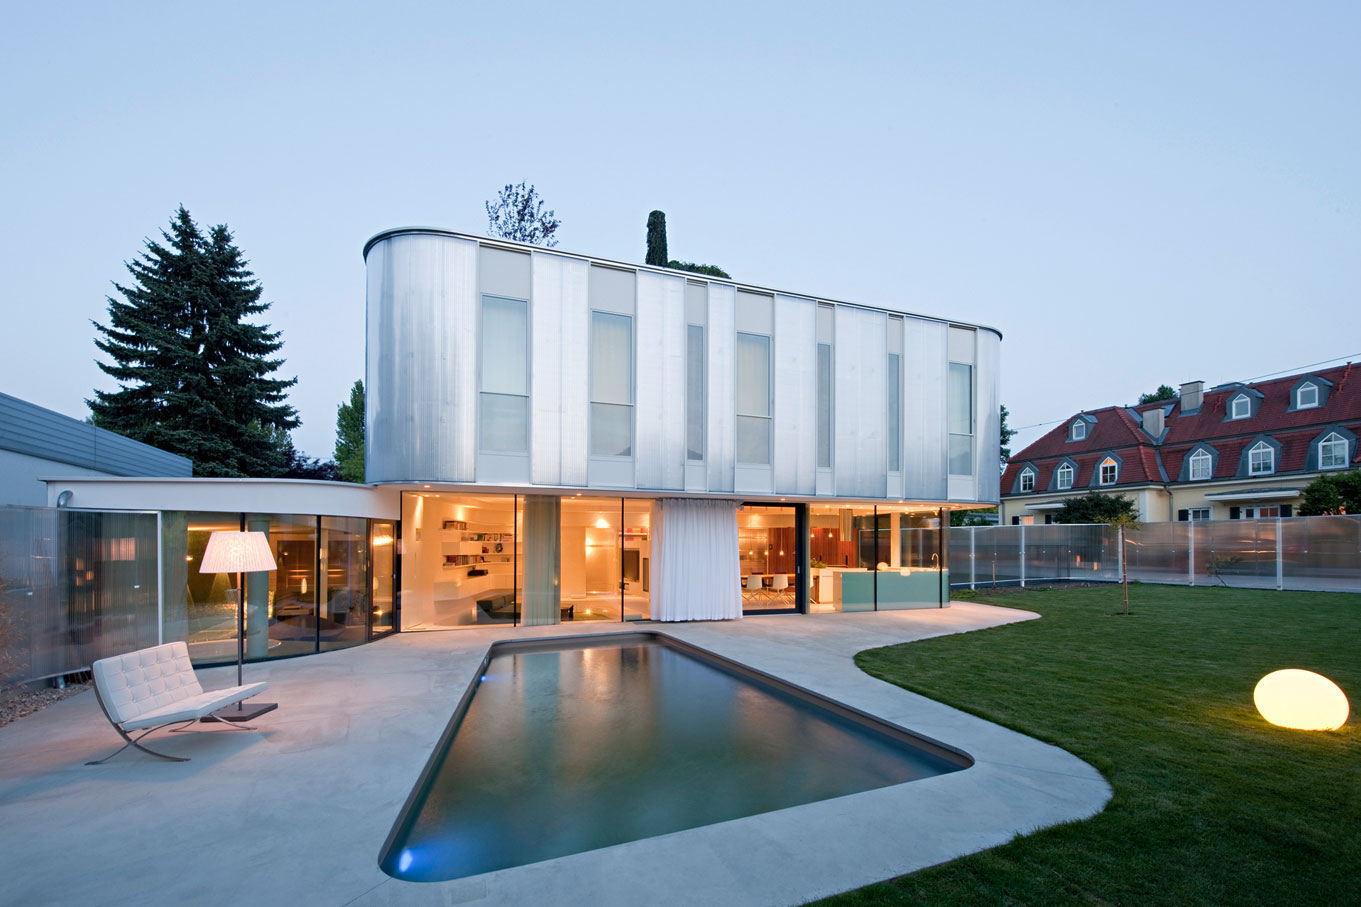 Wohnzimmer house in vienna by caramel architekten - Caramel architekten ...